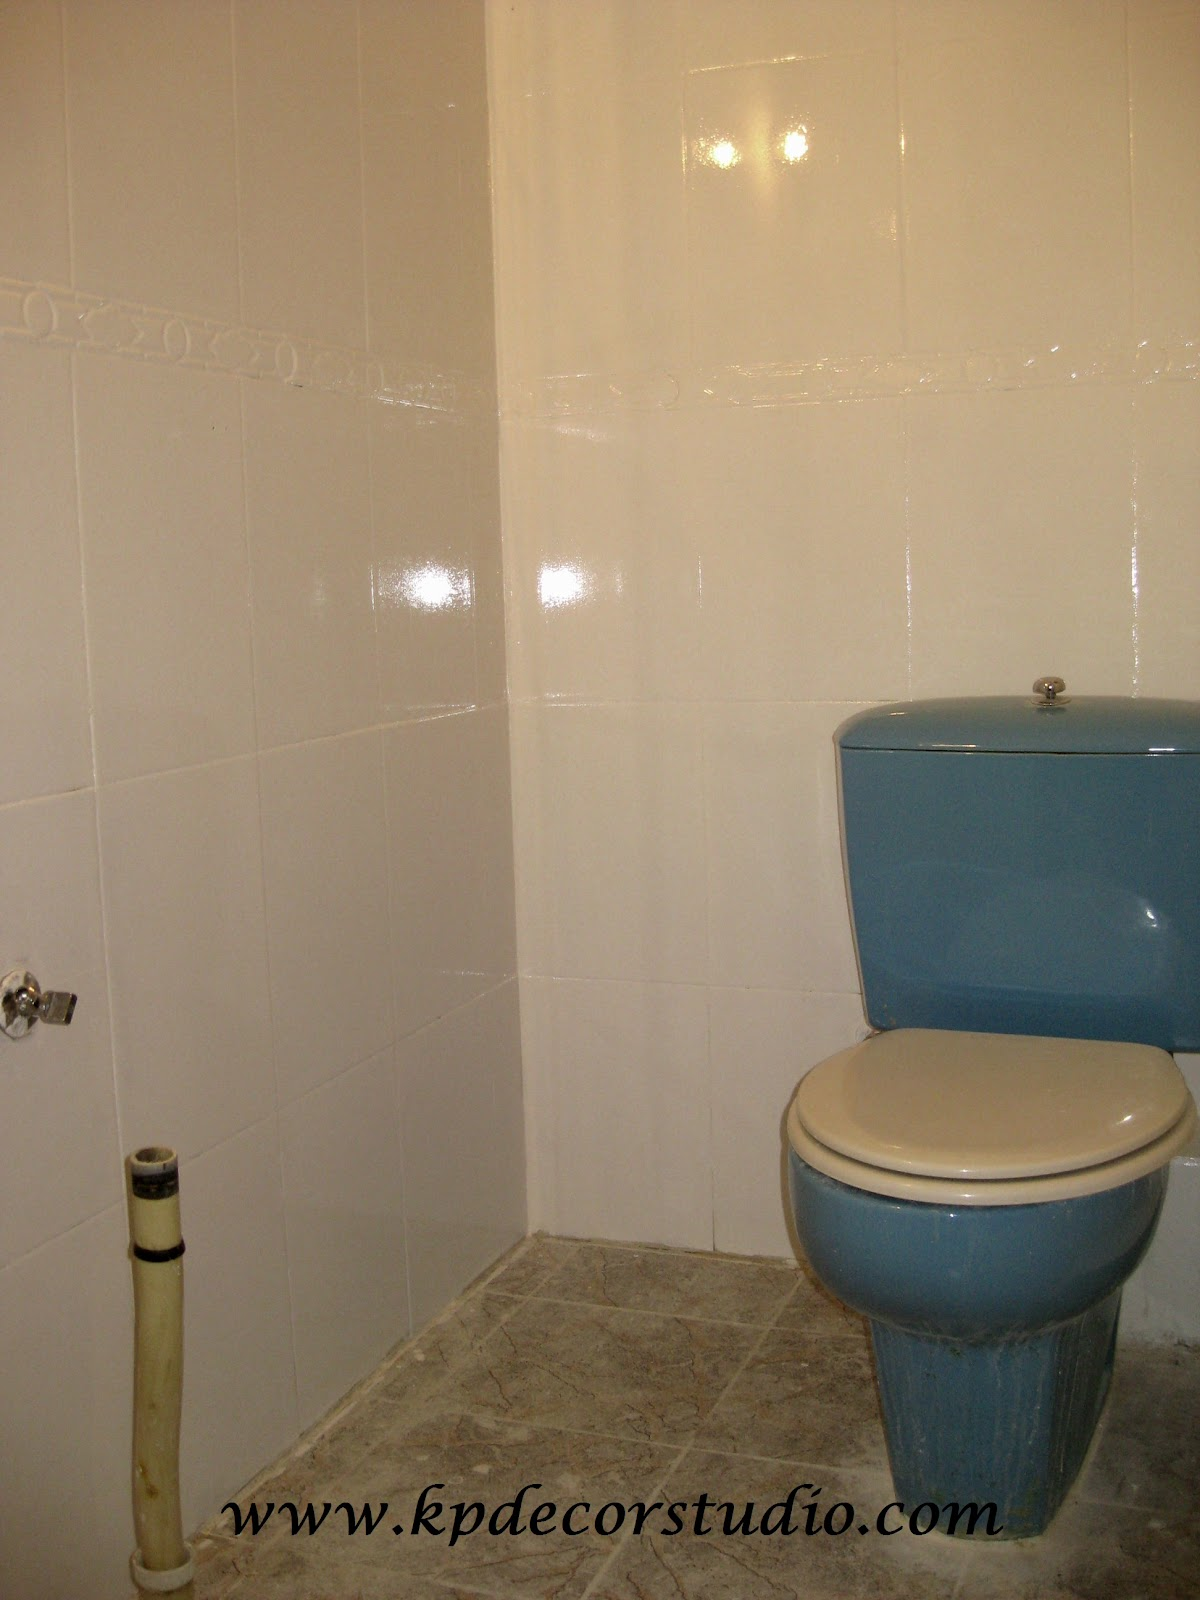 Kp decor studio reformando el ba o reforming the bathroom - Azulejos para banos leroy merlin ...